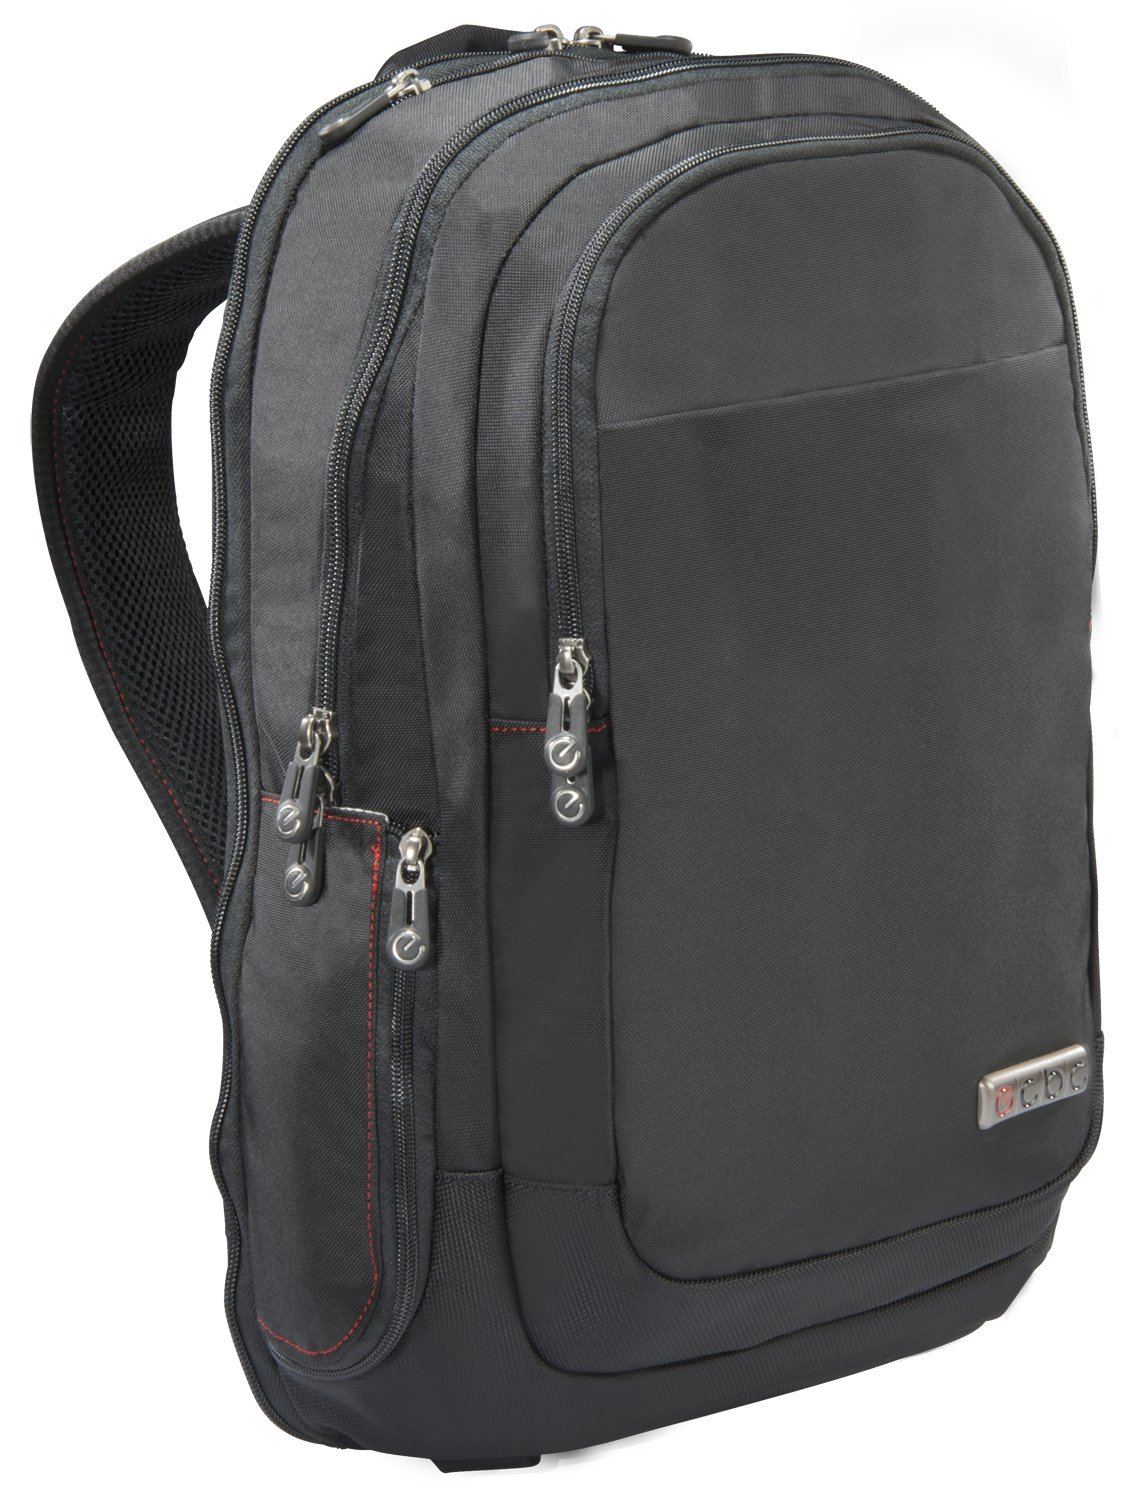 ECBC Javelin - Backpack Computer Bag - Black (B7102-10) Daypack for Laptops, MacBooks & Devices Up to 16.5'' - Travel, School or Business Backpack for Men & Women - Premium Quality, TSA FastPass Friendly by ECBC (Image #4)